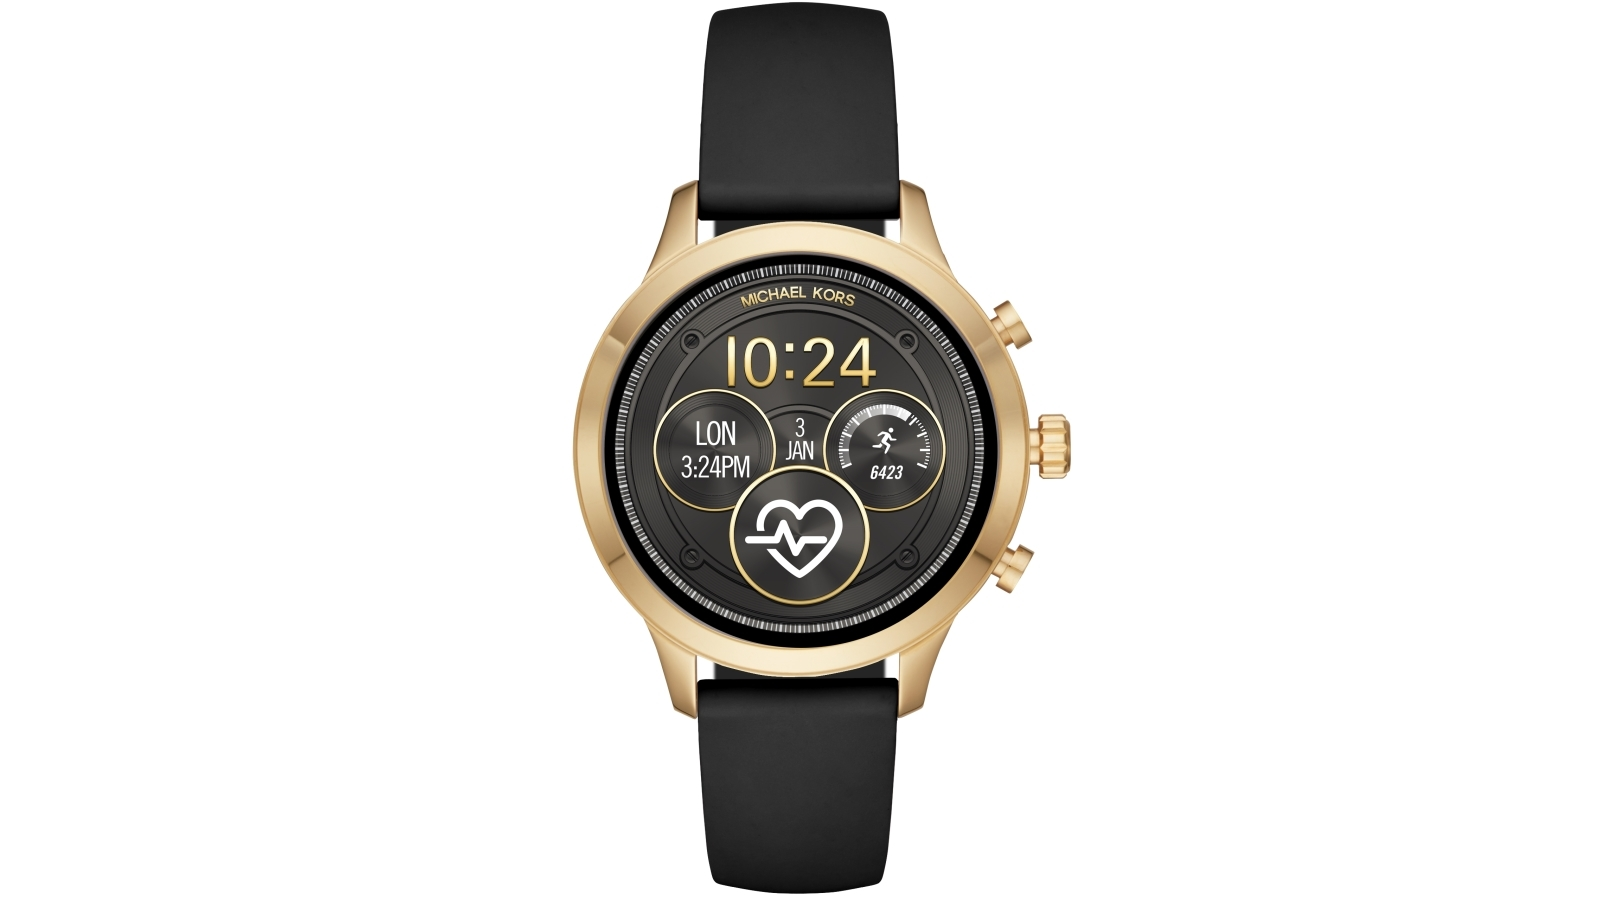 aed0a17c0cce Buy Michael Kors Runway Black Smart Watch with Gold Tone Case ...